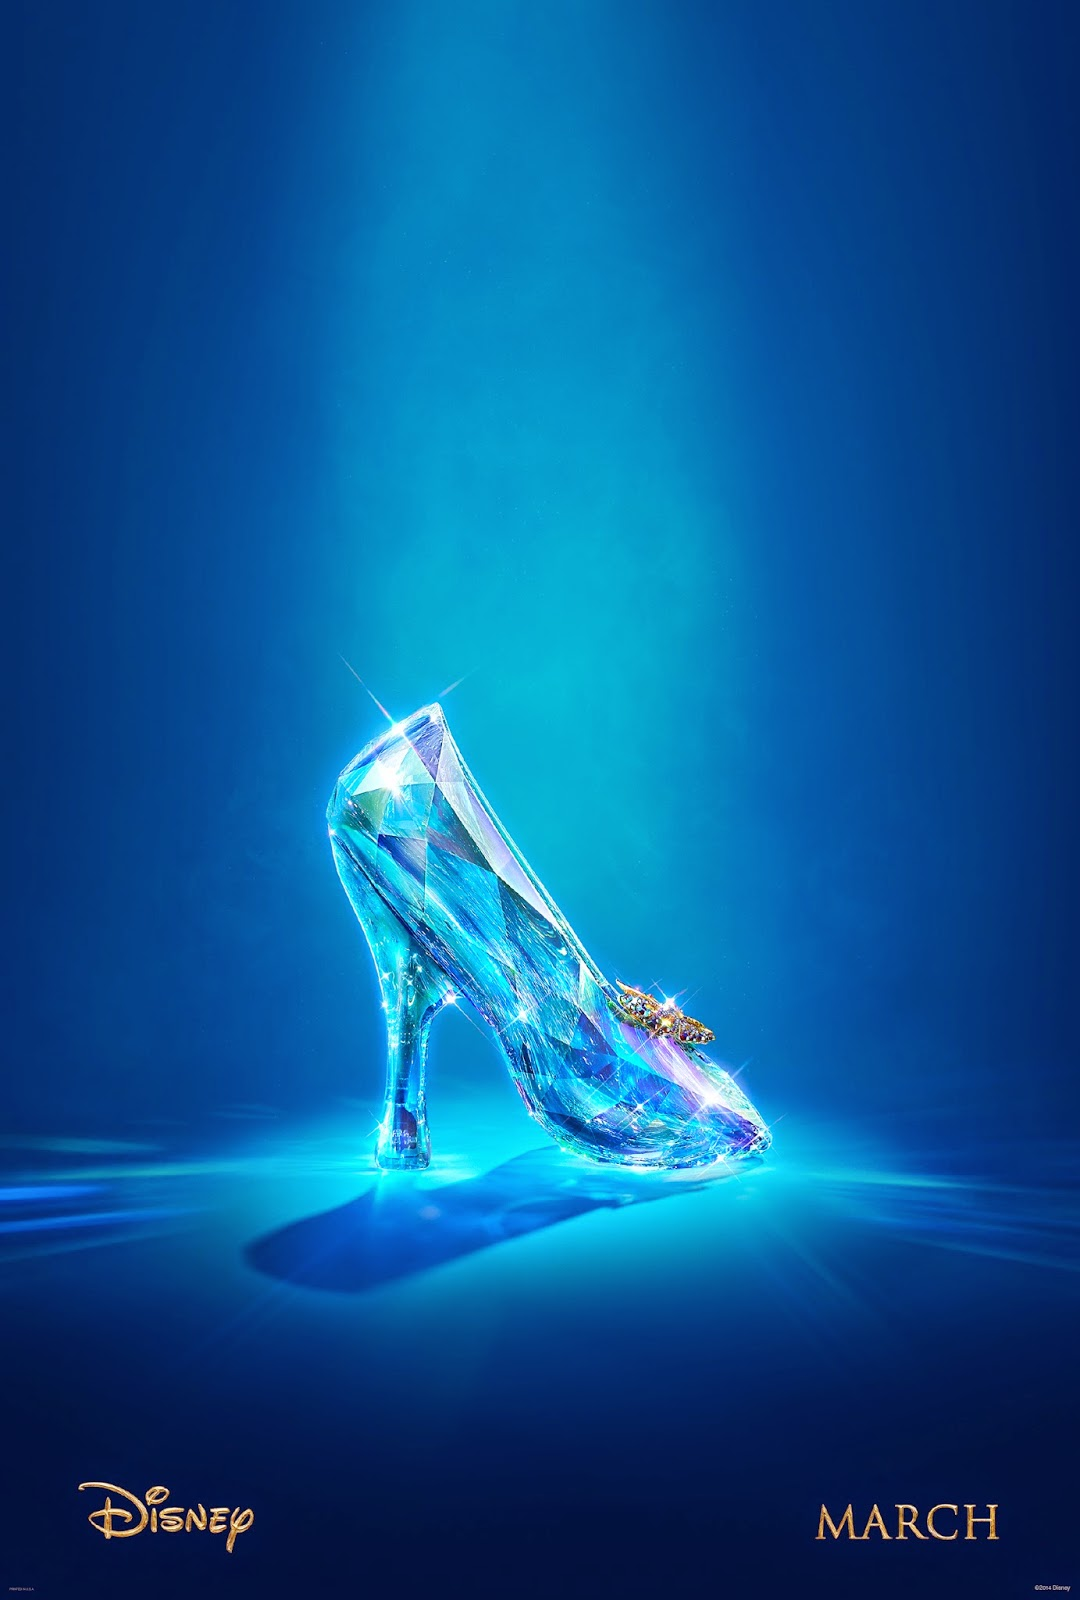 Teser poster for Cinderella:  just a simple image of the legendary glass slipper.